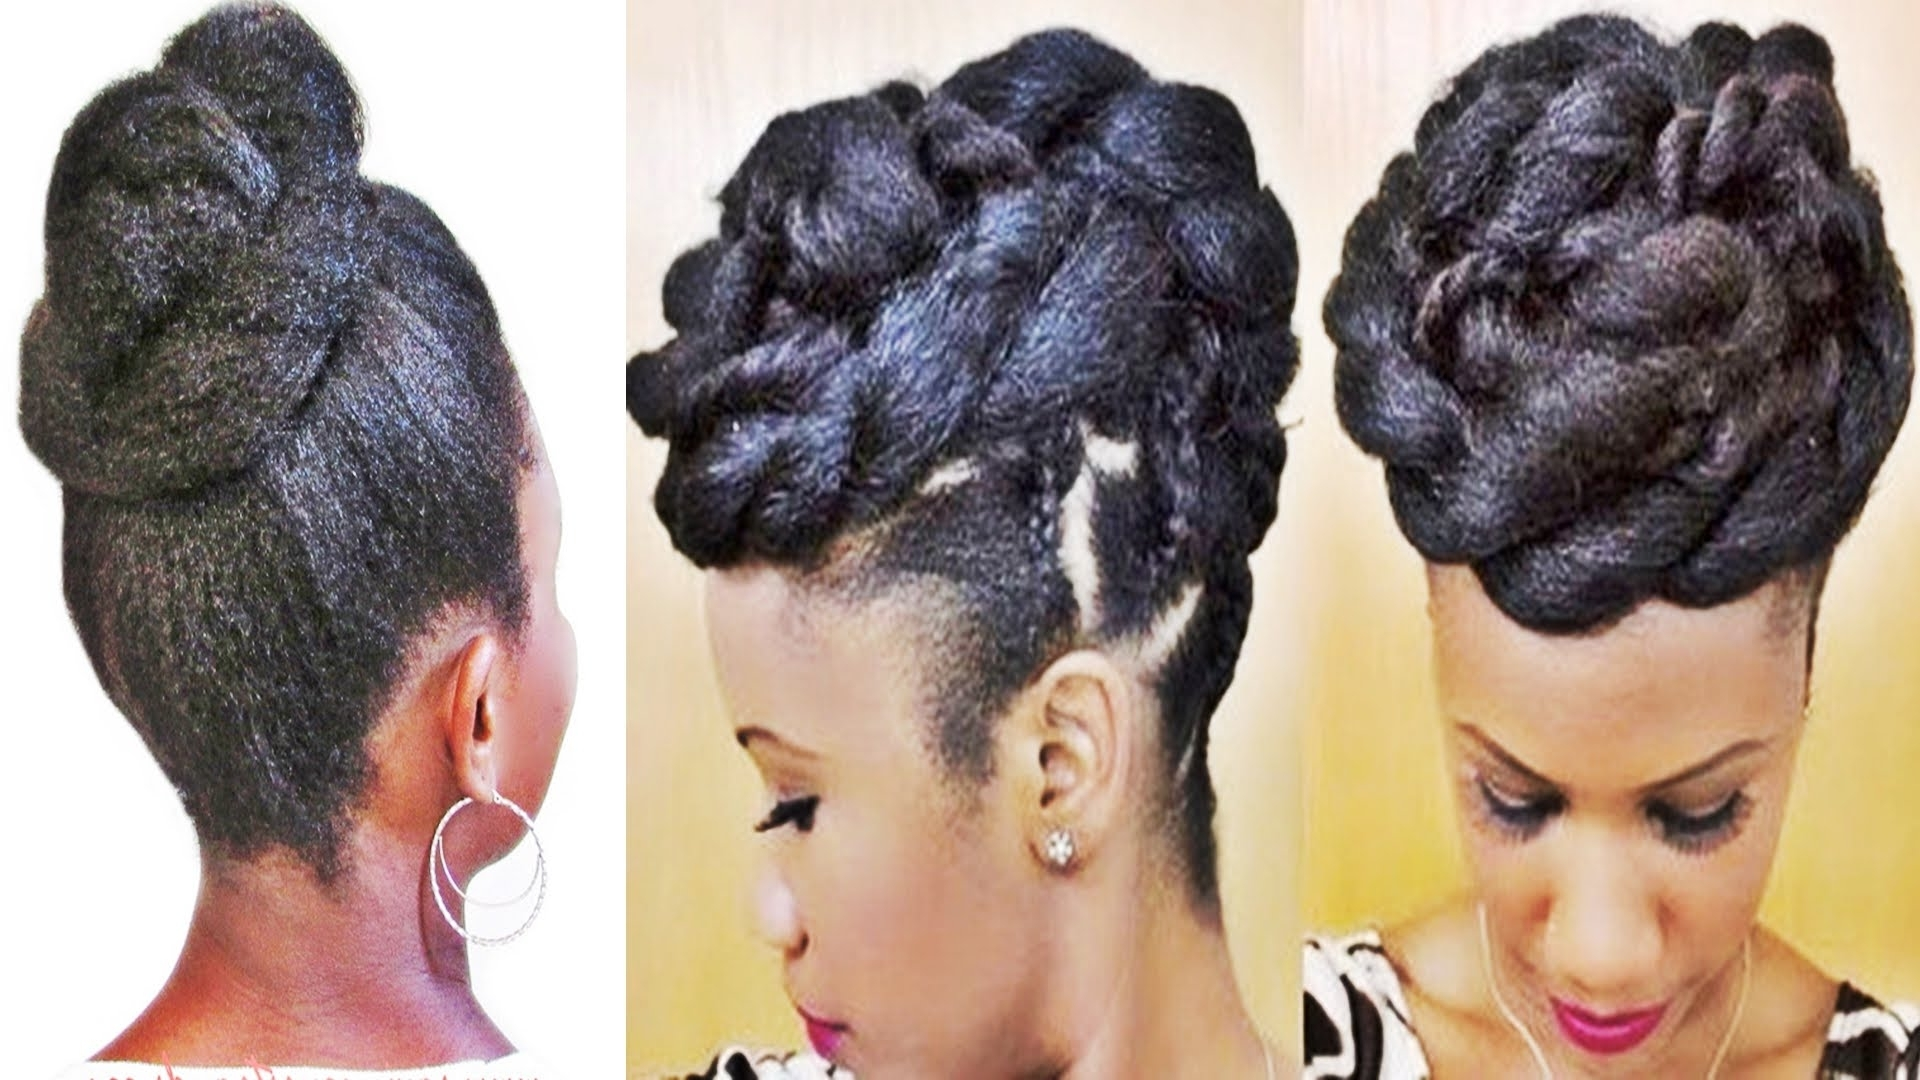 Braids And Twists Updo Hairstyle For Black Women – Youtube Throughout Quick Twist Updo Hairstyles (View 3 of 15)